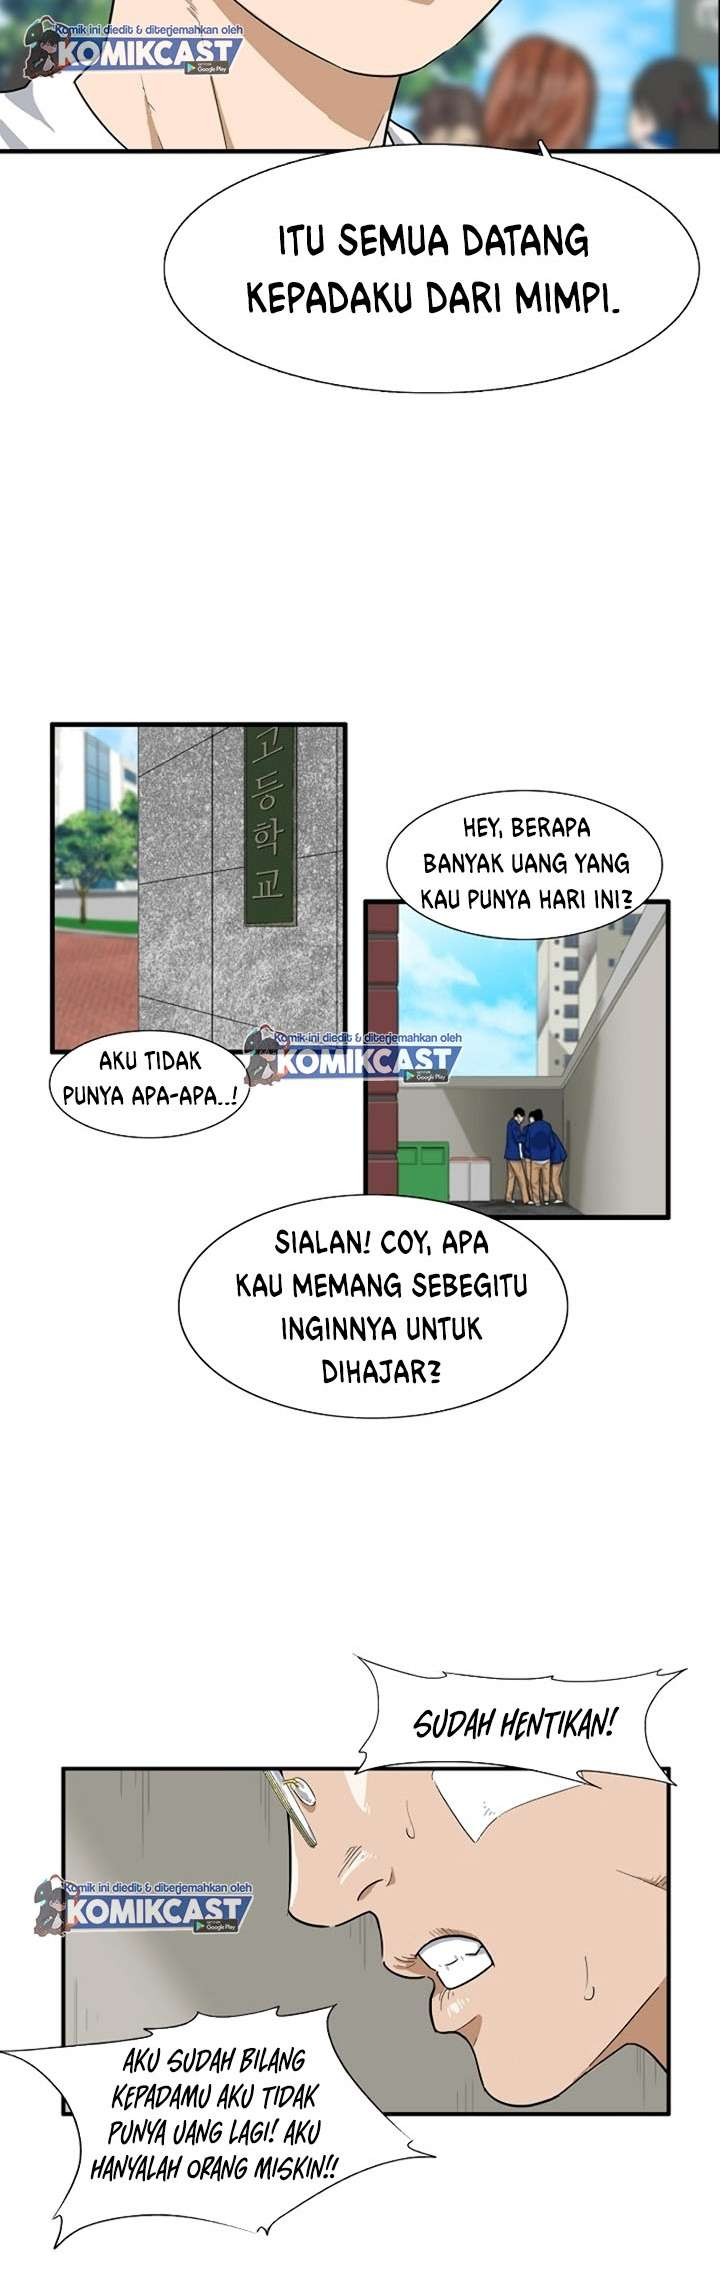 This is the Law Chapter 02 Bahasa Indonesia page 57